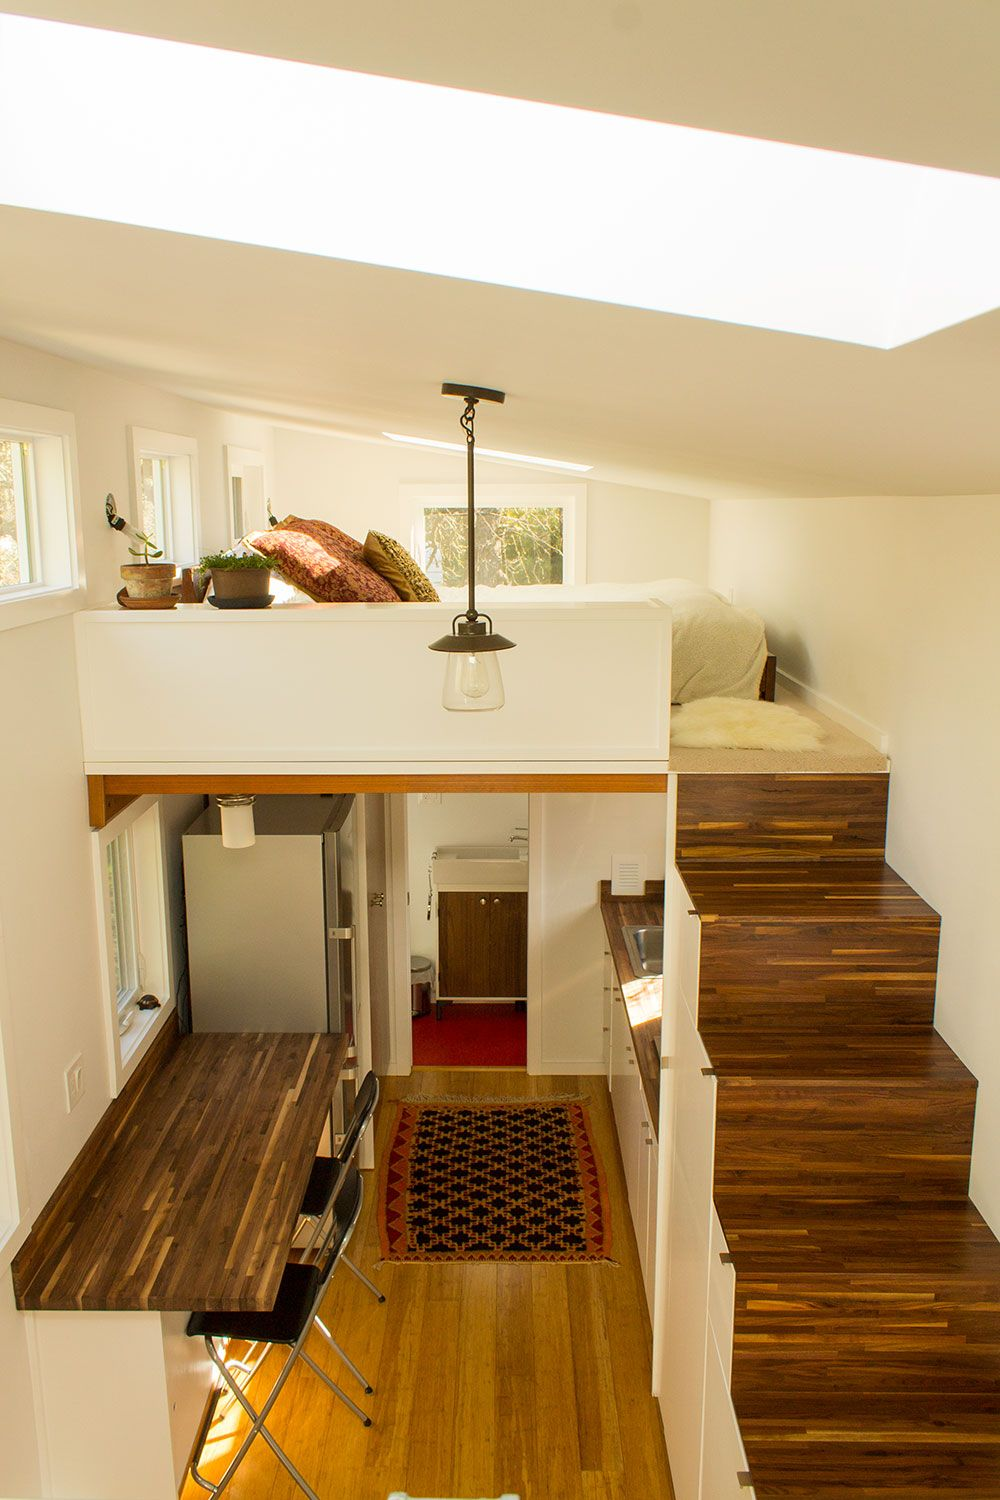 Hikari Box Tiny House Interior Tiny House Interior Design Tiny House Living